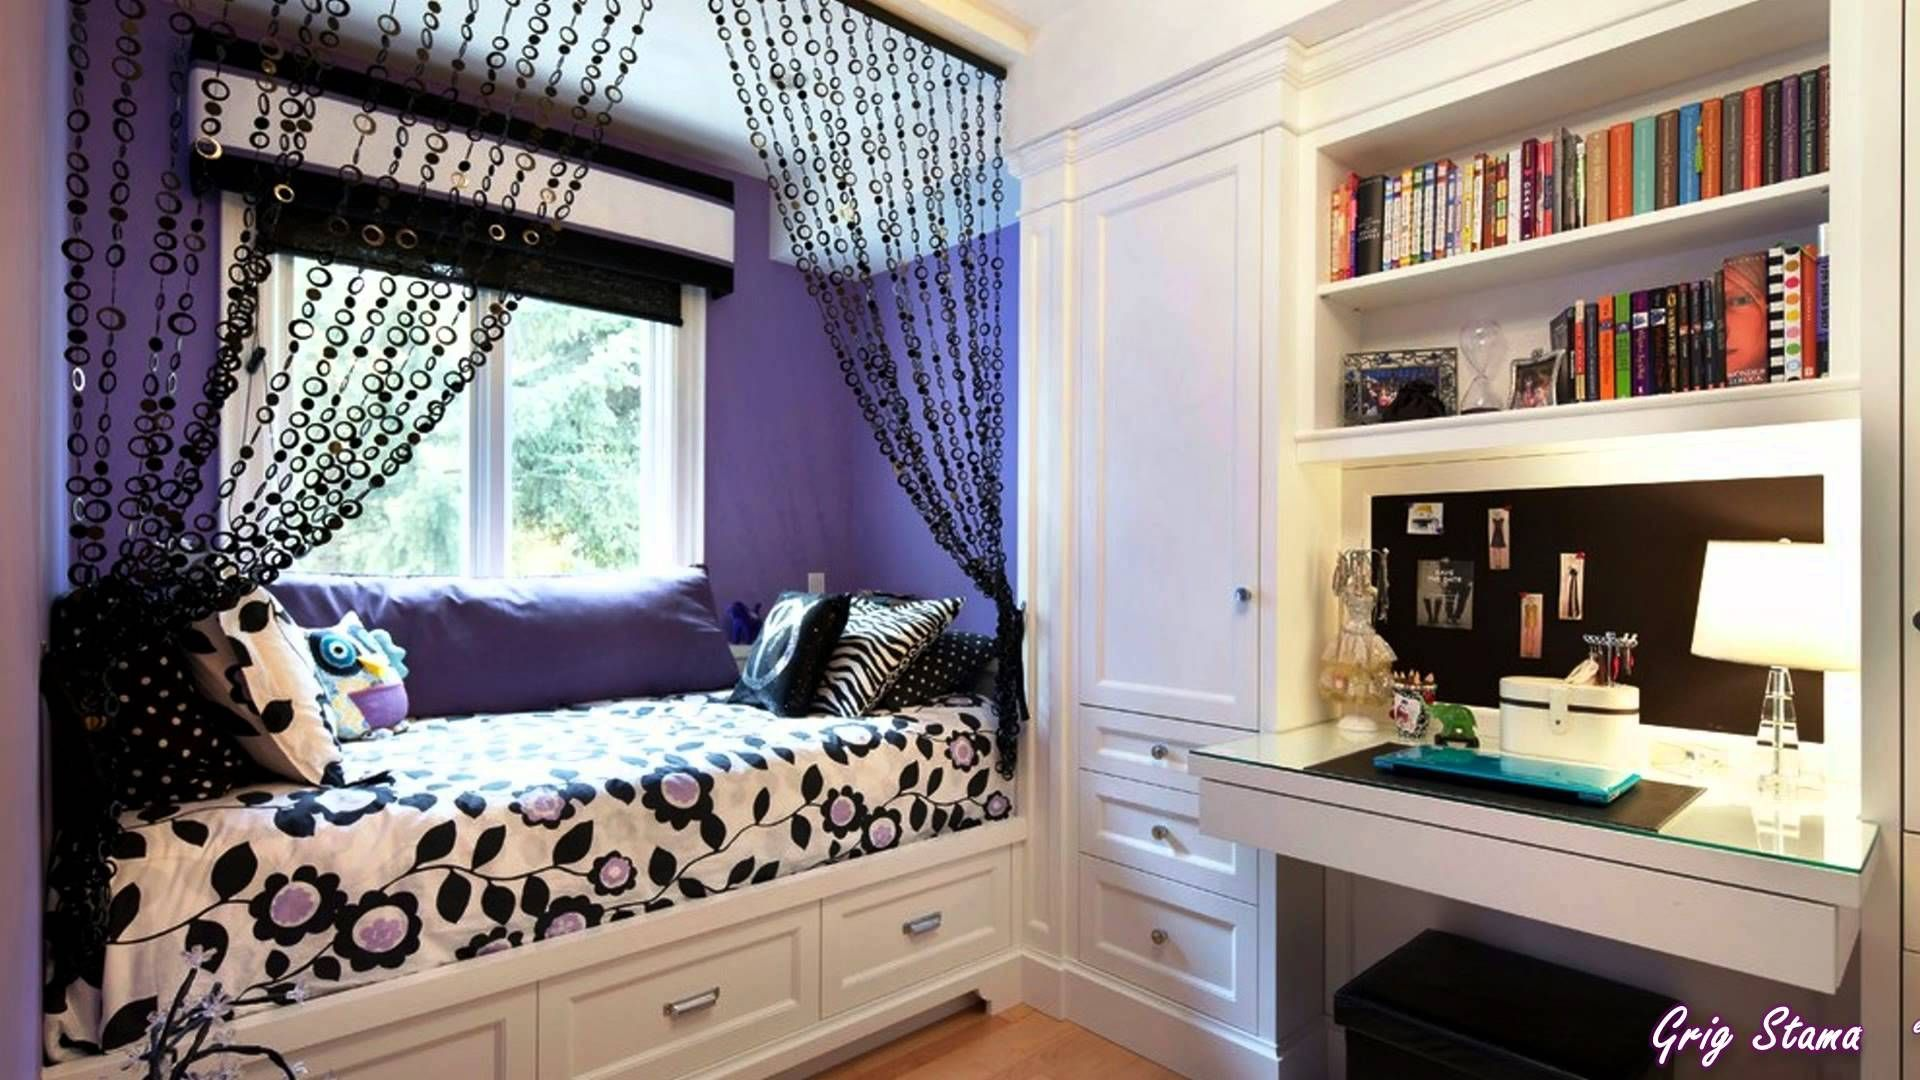 Awesome bedroom ideas for teenage girls - Bedroom Ideas For Teenage Girls Tumblr Simple Cosmoplast Biz